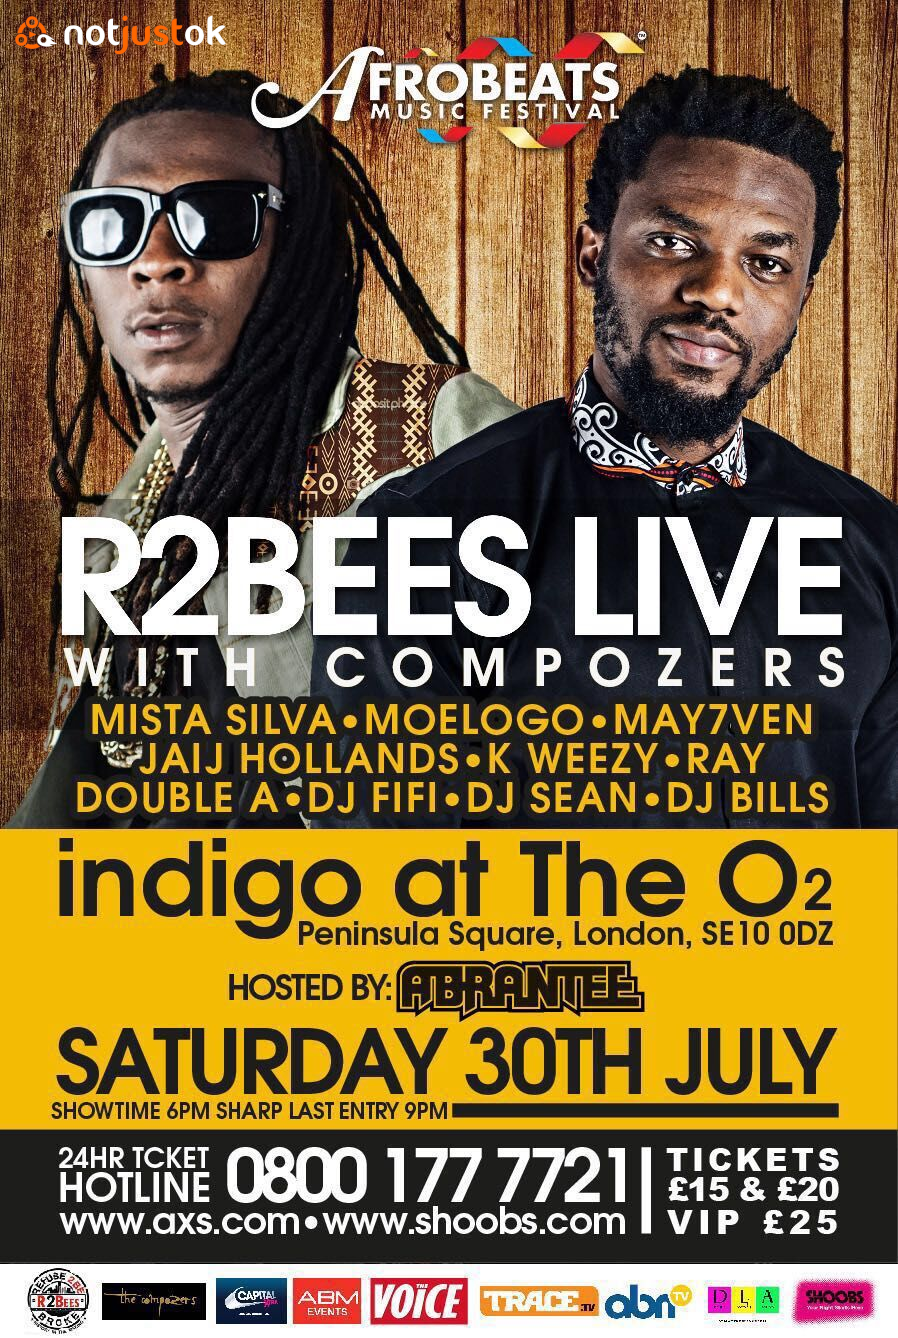 R2BEES2